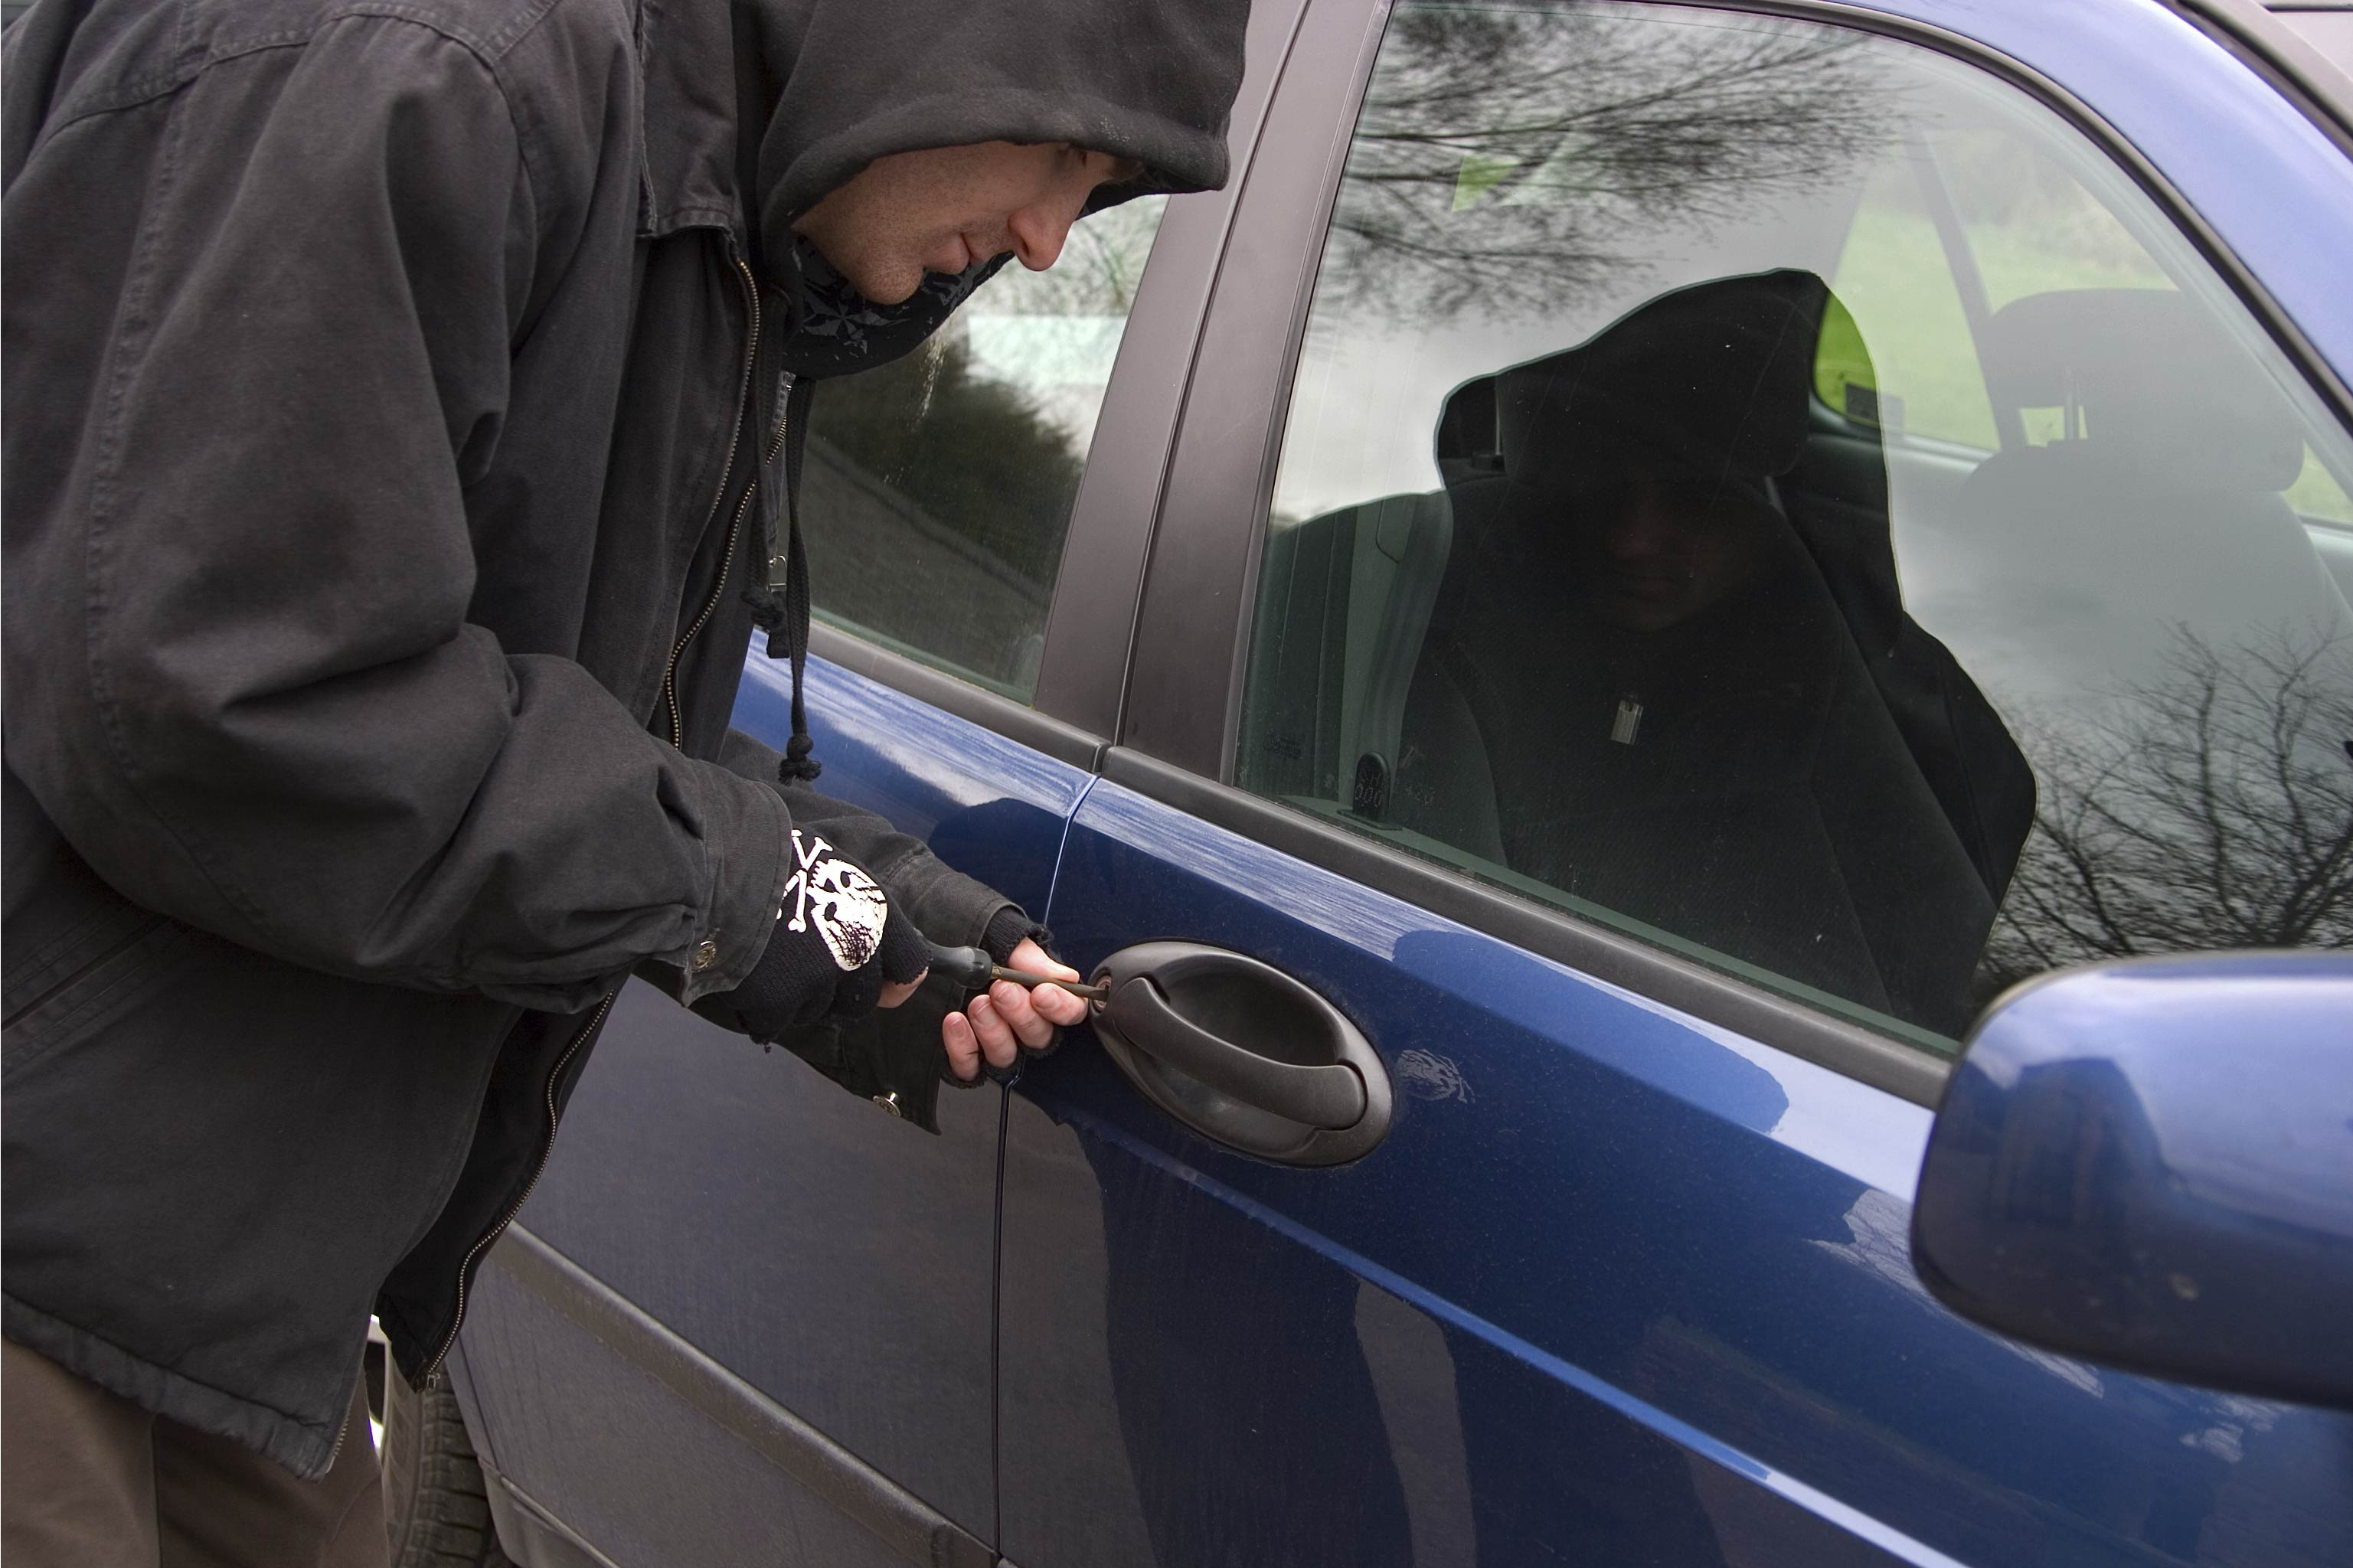 Does Auto Insurance Cover Theft of Personal Property in a Vehicle?